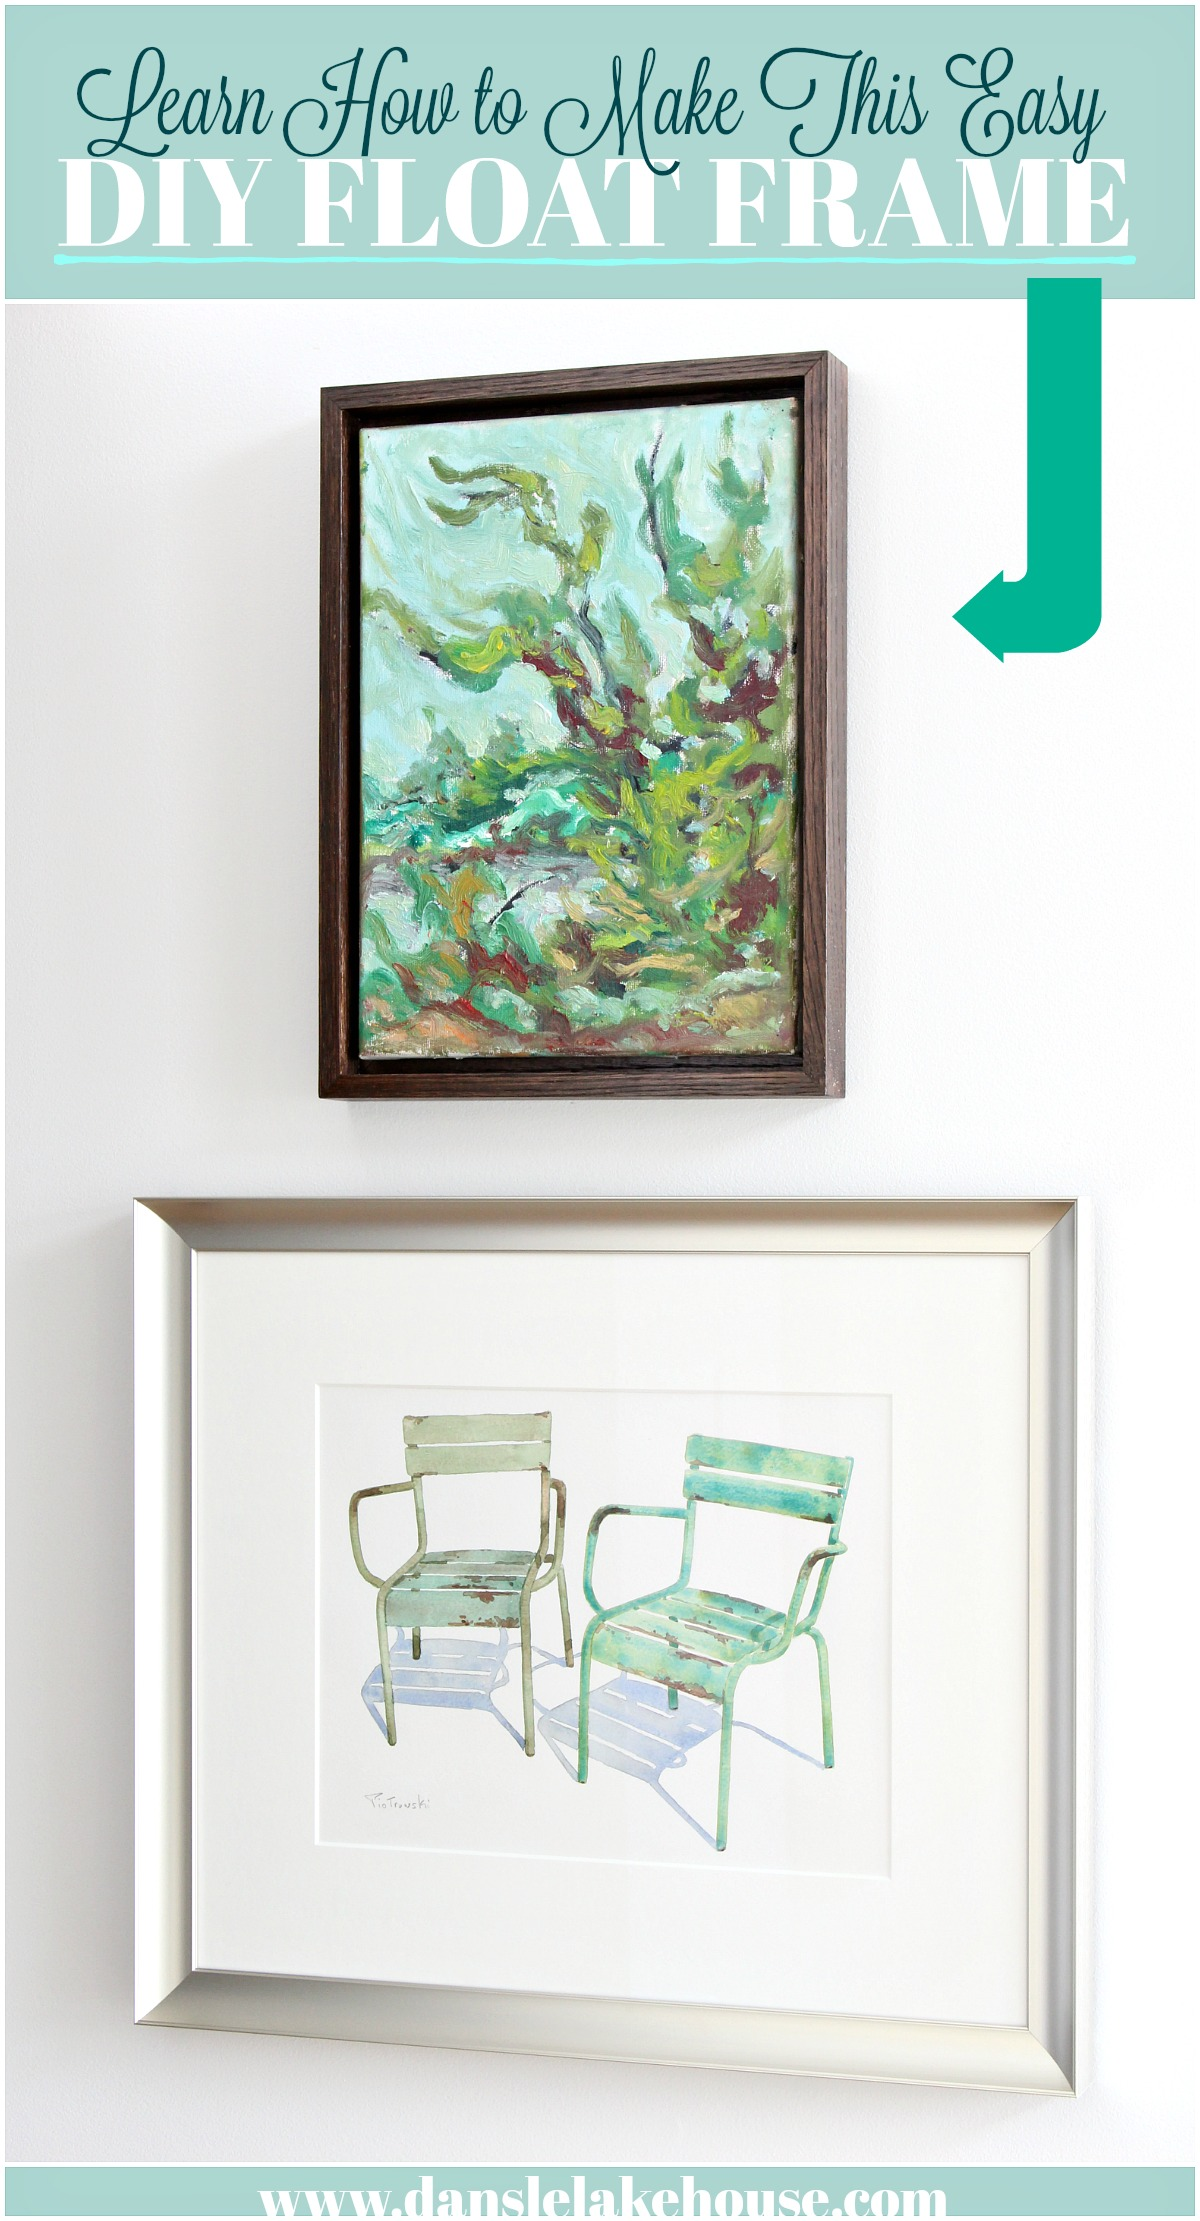 Learn How to Make This Easy DIY Float Frame and Frame Your Art for Less! Easy DIY Floating Frame Project Tutorial